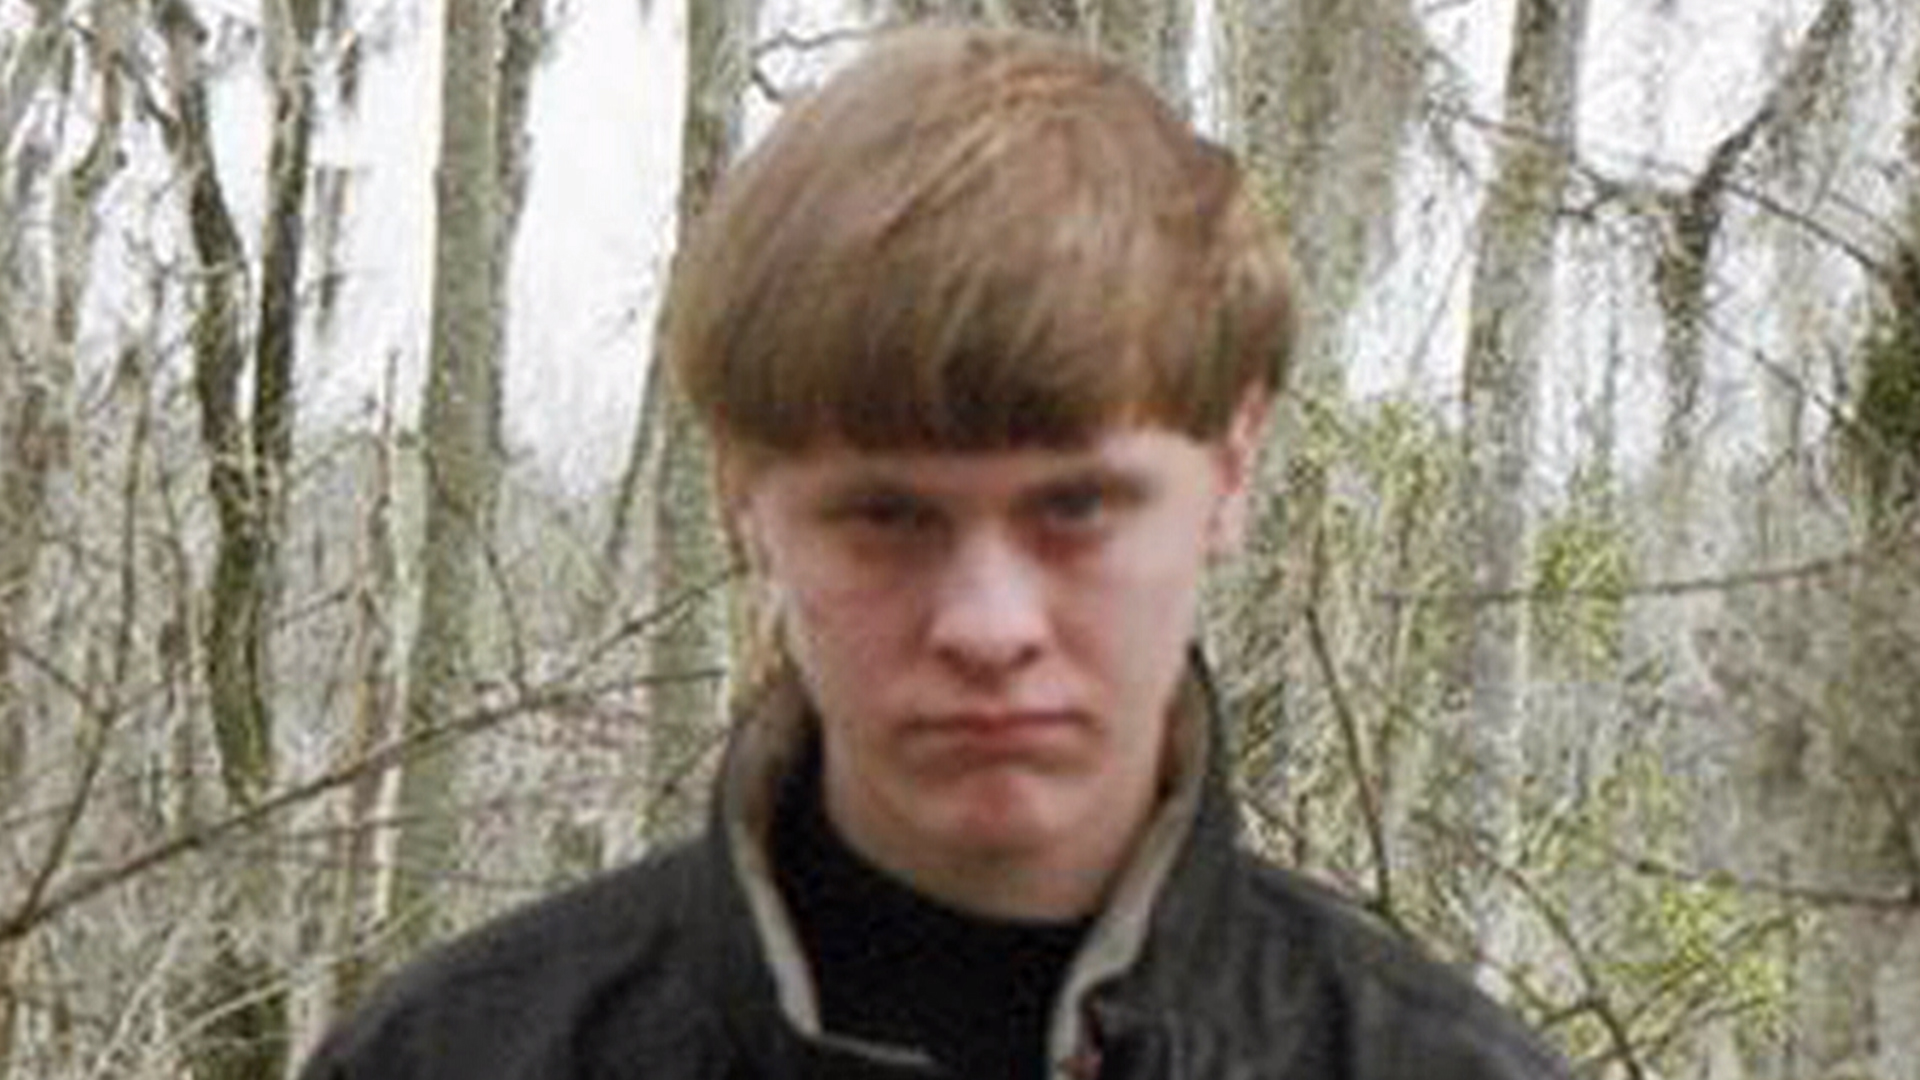 Dylan Roof 21 Identified As Charleston Shooting Suspect